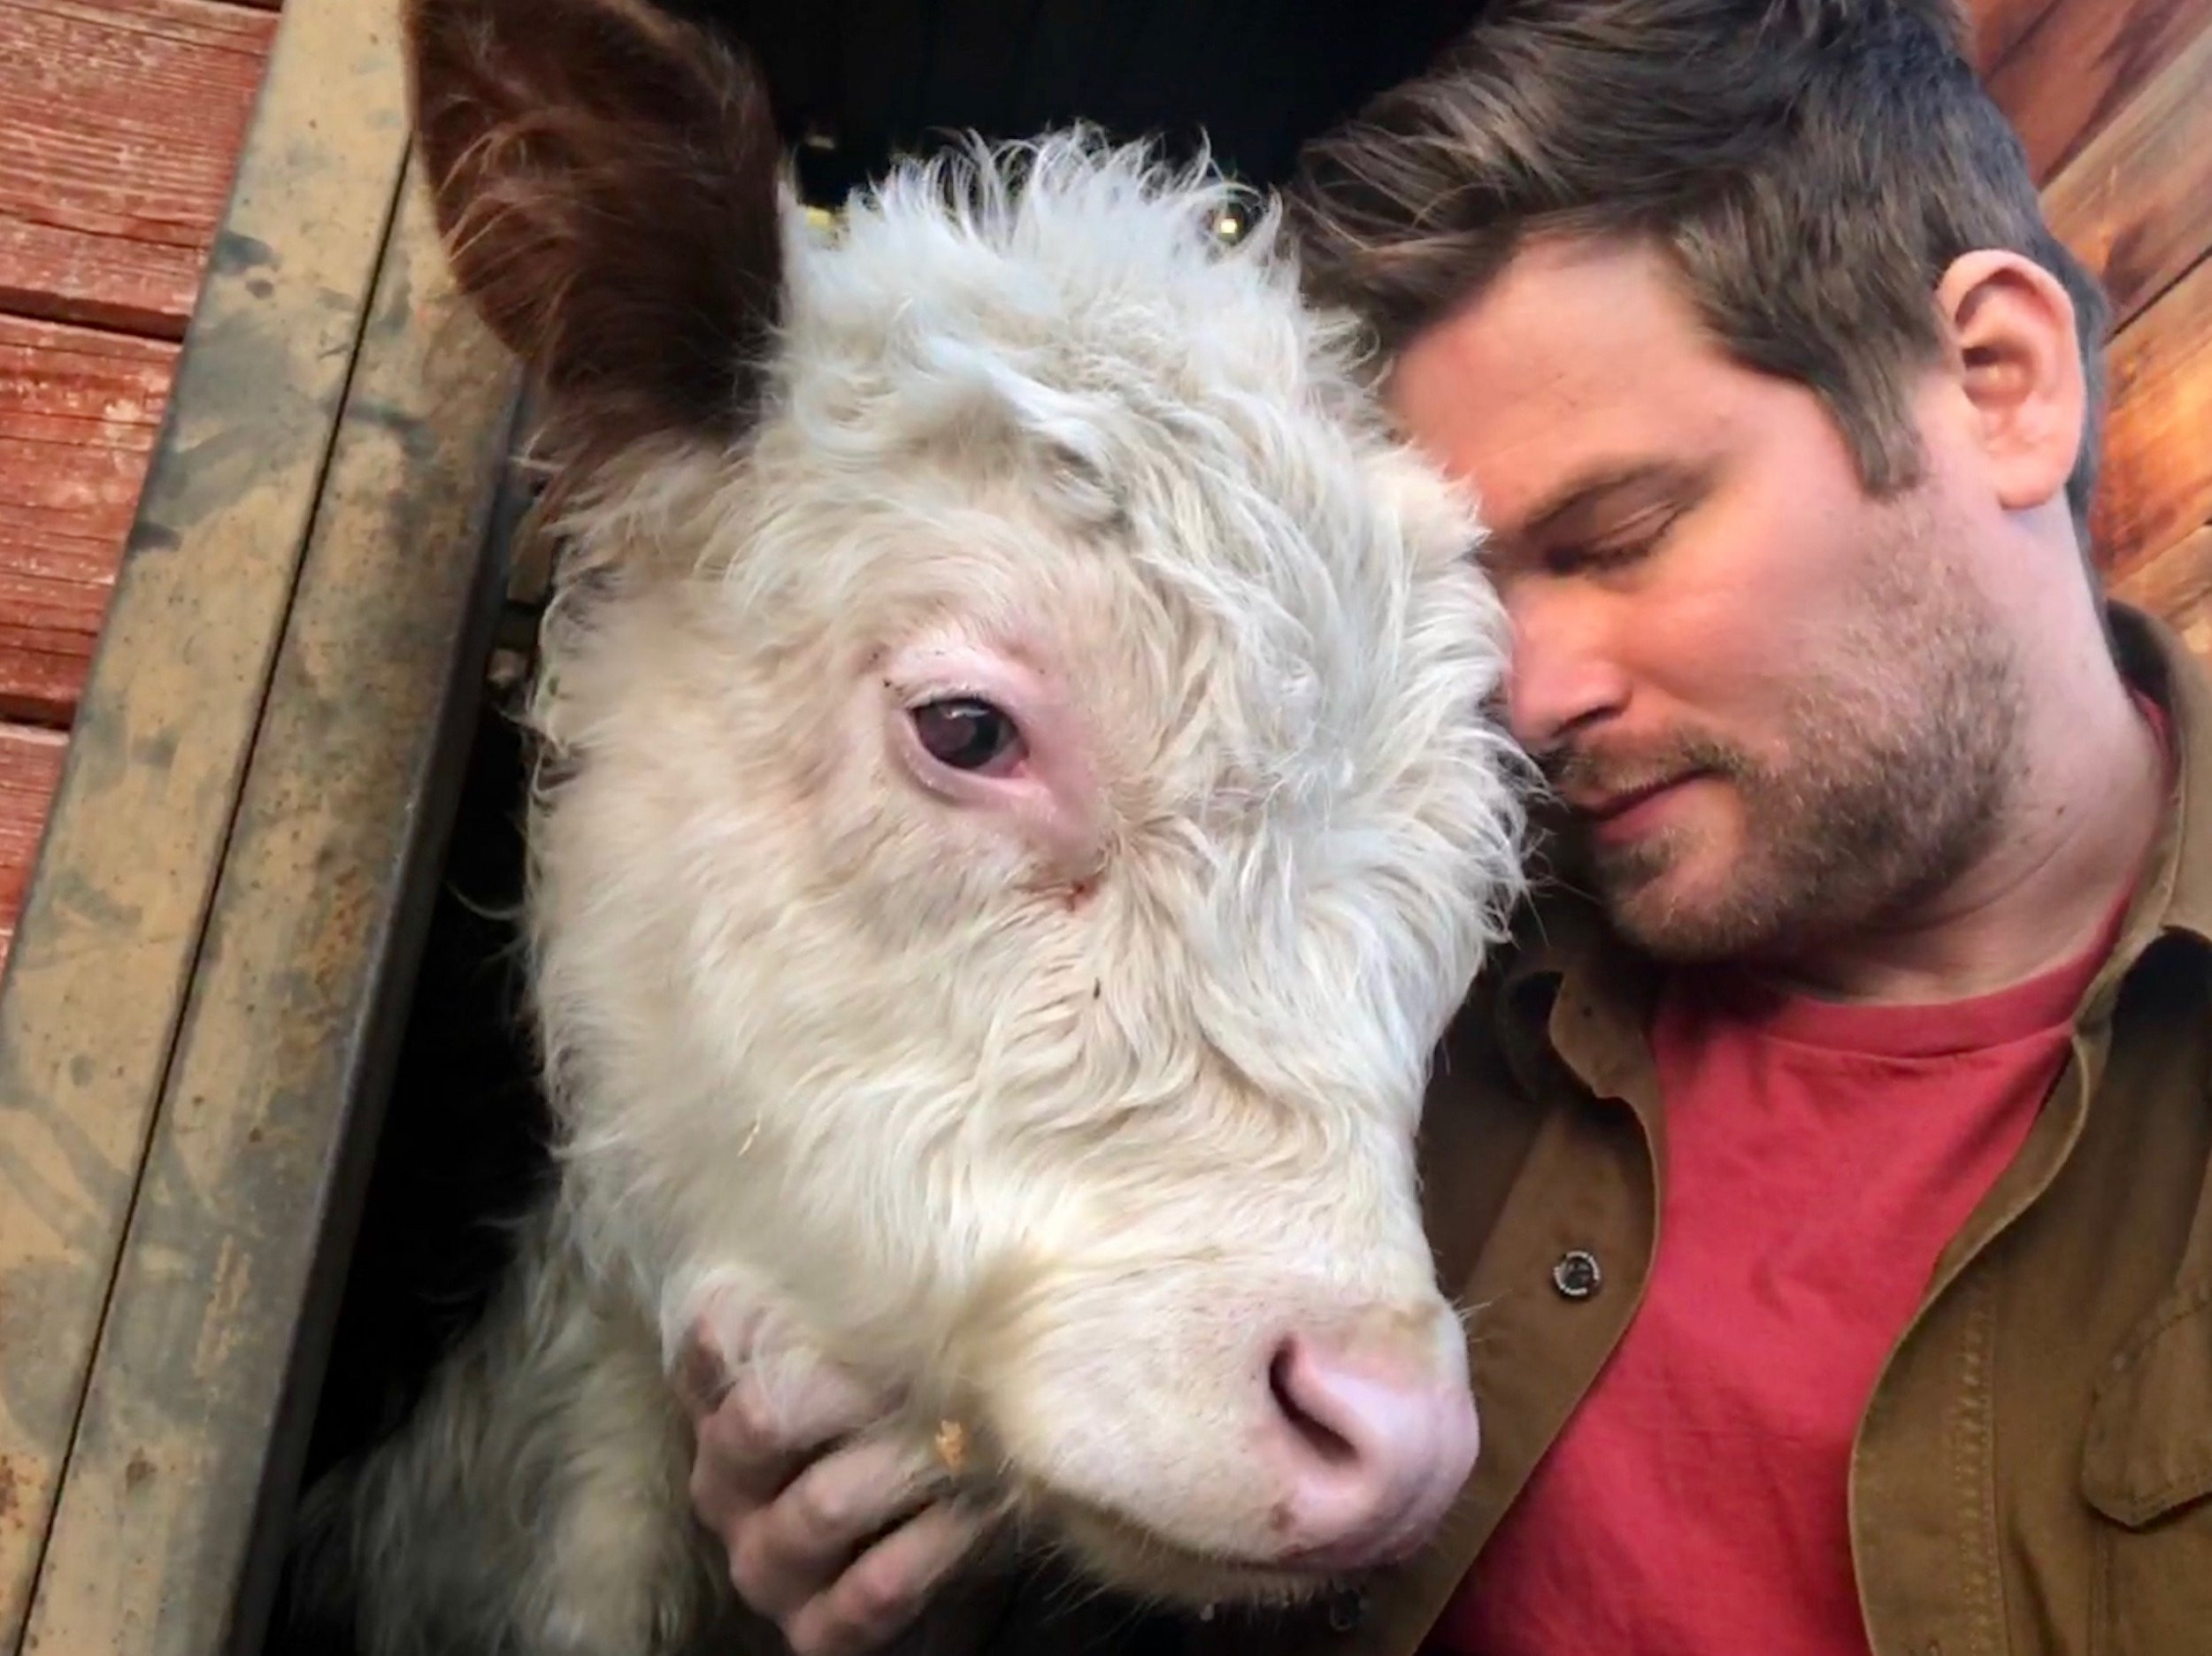 Mike the cow pictured with owner Dan who drove him more than 2,000 miles across the US in an emergency road trip to try and save his sight. See SWNS story NYCOW; A man drove his pet cow more than 2,000 miles across the US in an emergency road trip to try and save his sight. Dan McKernan, 28, rescued Hereford calf Mike, six months, from a nearby farm in November 2017, but quickly noticed that there was something not right with his eyes. Keen to give the young calf the best chance at life, Mike took him to veterinary medics in Michigan State University who determined that he was blind in one eye and needed surgery on the other to treat a detached retina. Dan began to research veterinary ophthalmologists and discovered Dr Allison Hoffman, a miracle worker who has saved the sight of hundreds of animals. The only problem was that her Californian surgery was more than 2000 miles away from Dan???s home in Chelsea, Michigan. But, the former tech worker, who now runs Barn Animal Sanctuary, did not let this stop him and decided to load up his van and drive his farm pal cross-country to Pasadena. Although the surgery was sadly unsuccessful, Dan said the road trip was a wonderful experience for the pals, who visited Malibu and took photos at Mt Rushmore on the way home.